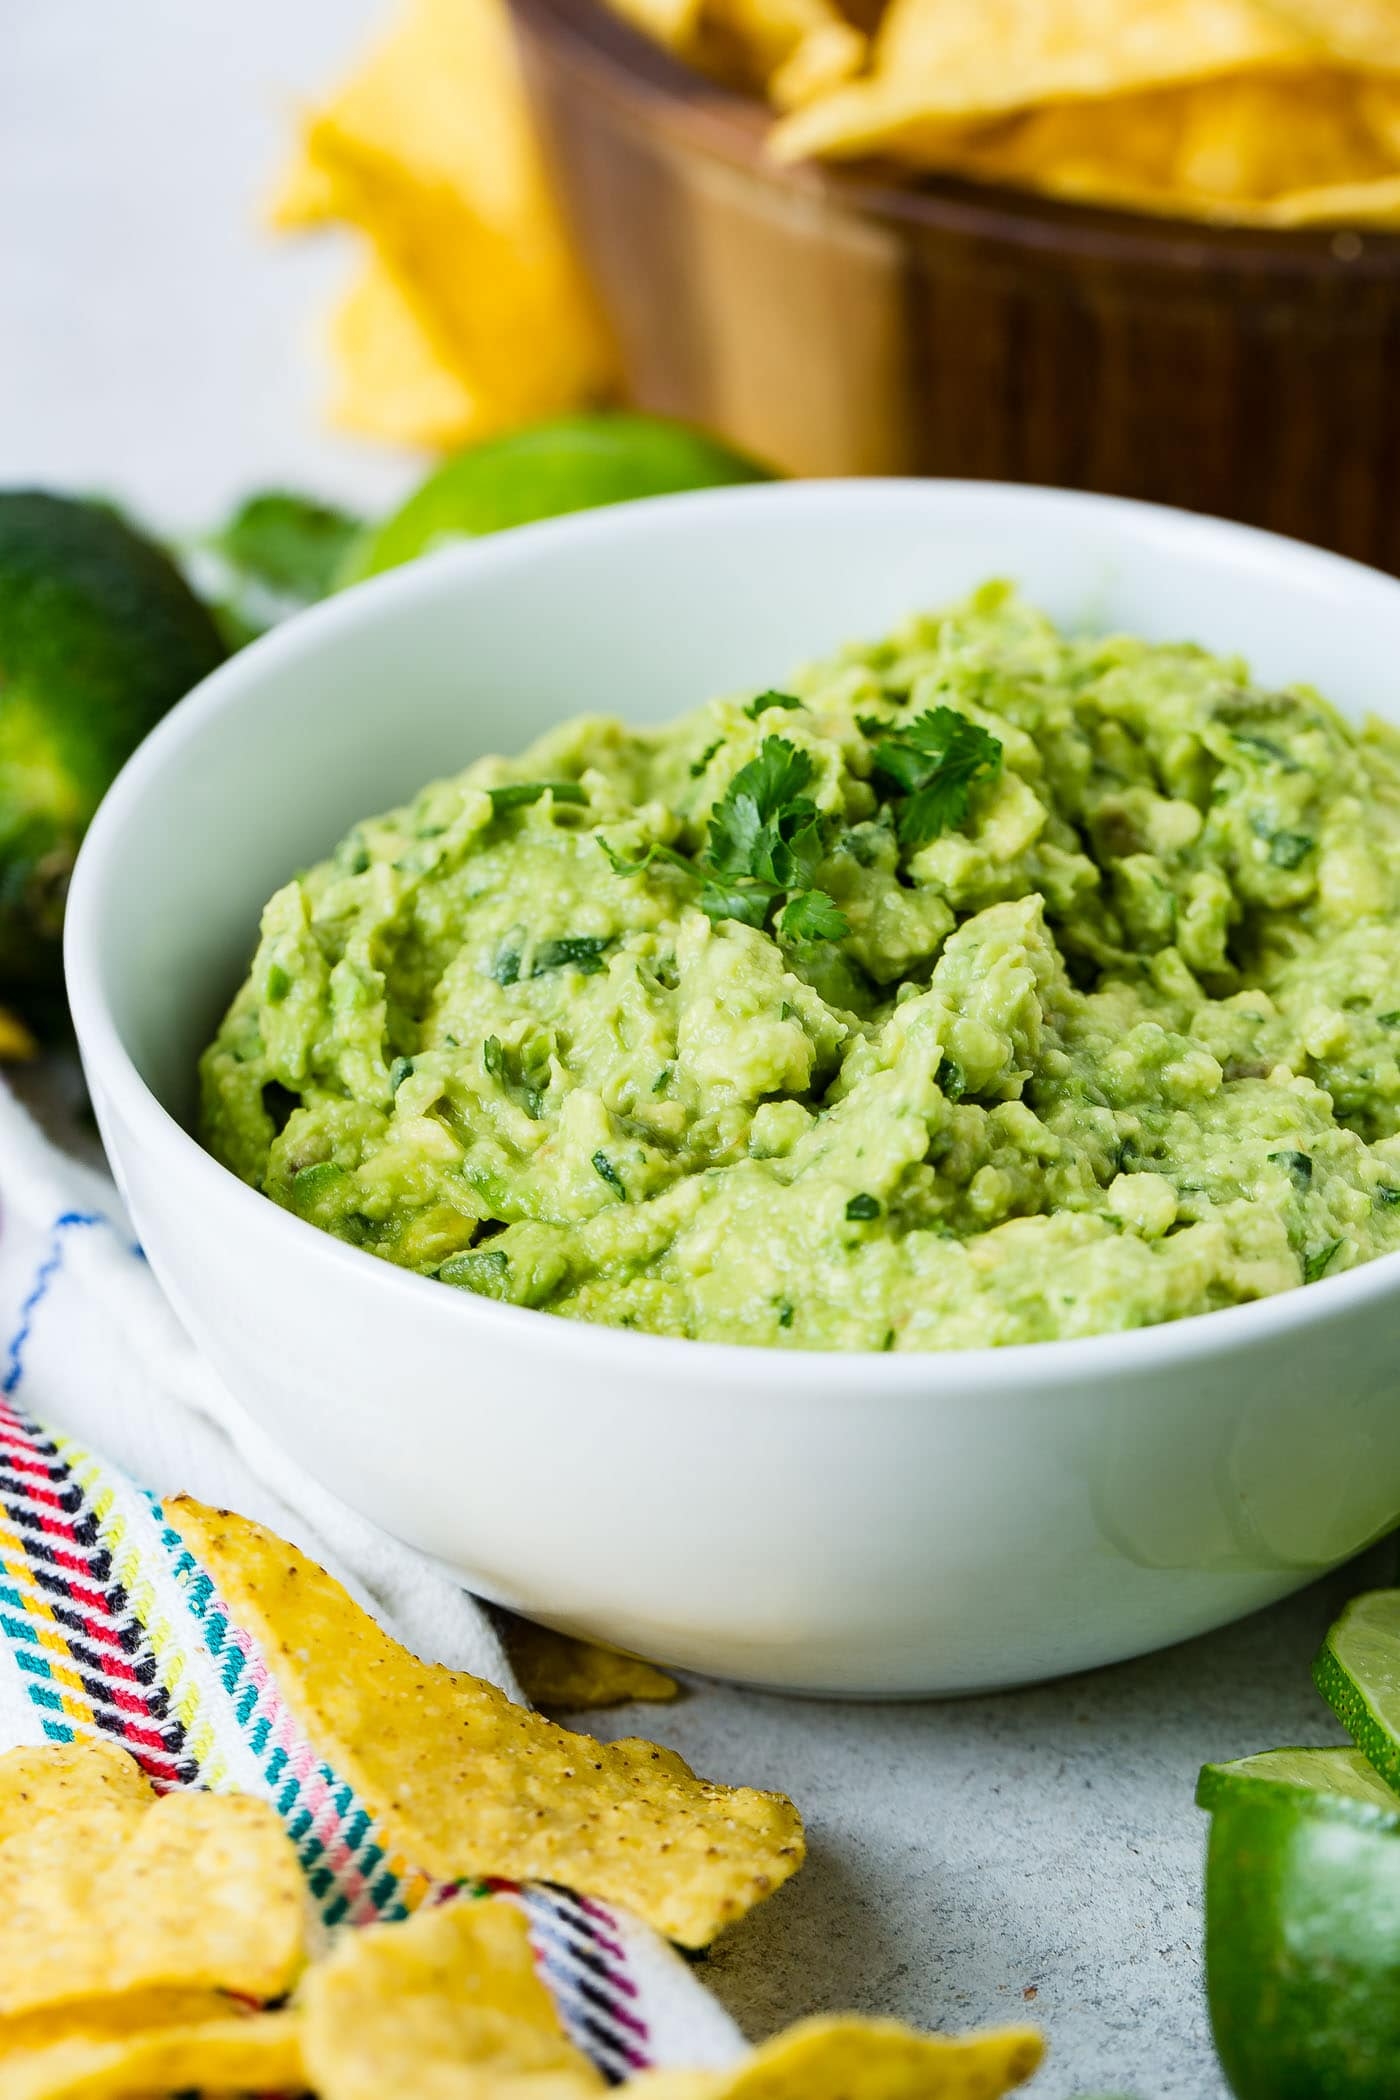 A white bowl of fresh guacamole with cilantro leaves on top. There are two whole limes and a wooden bowl of tortilla chips in the background.